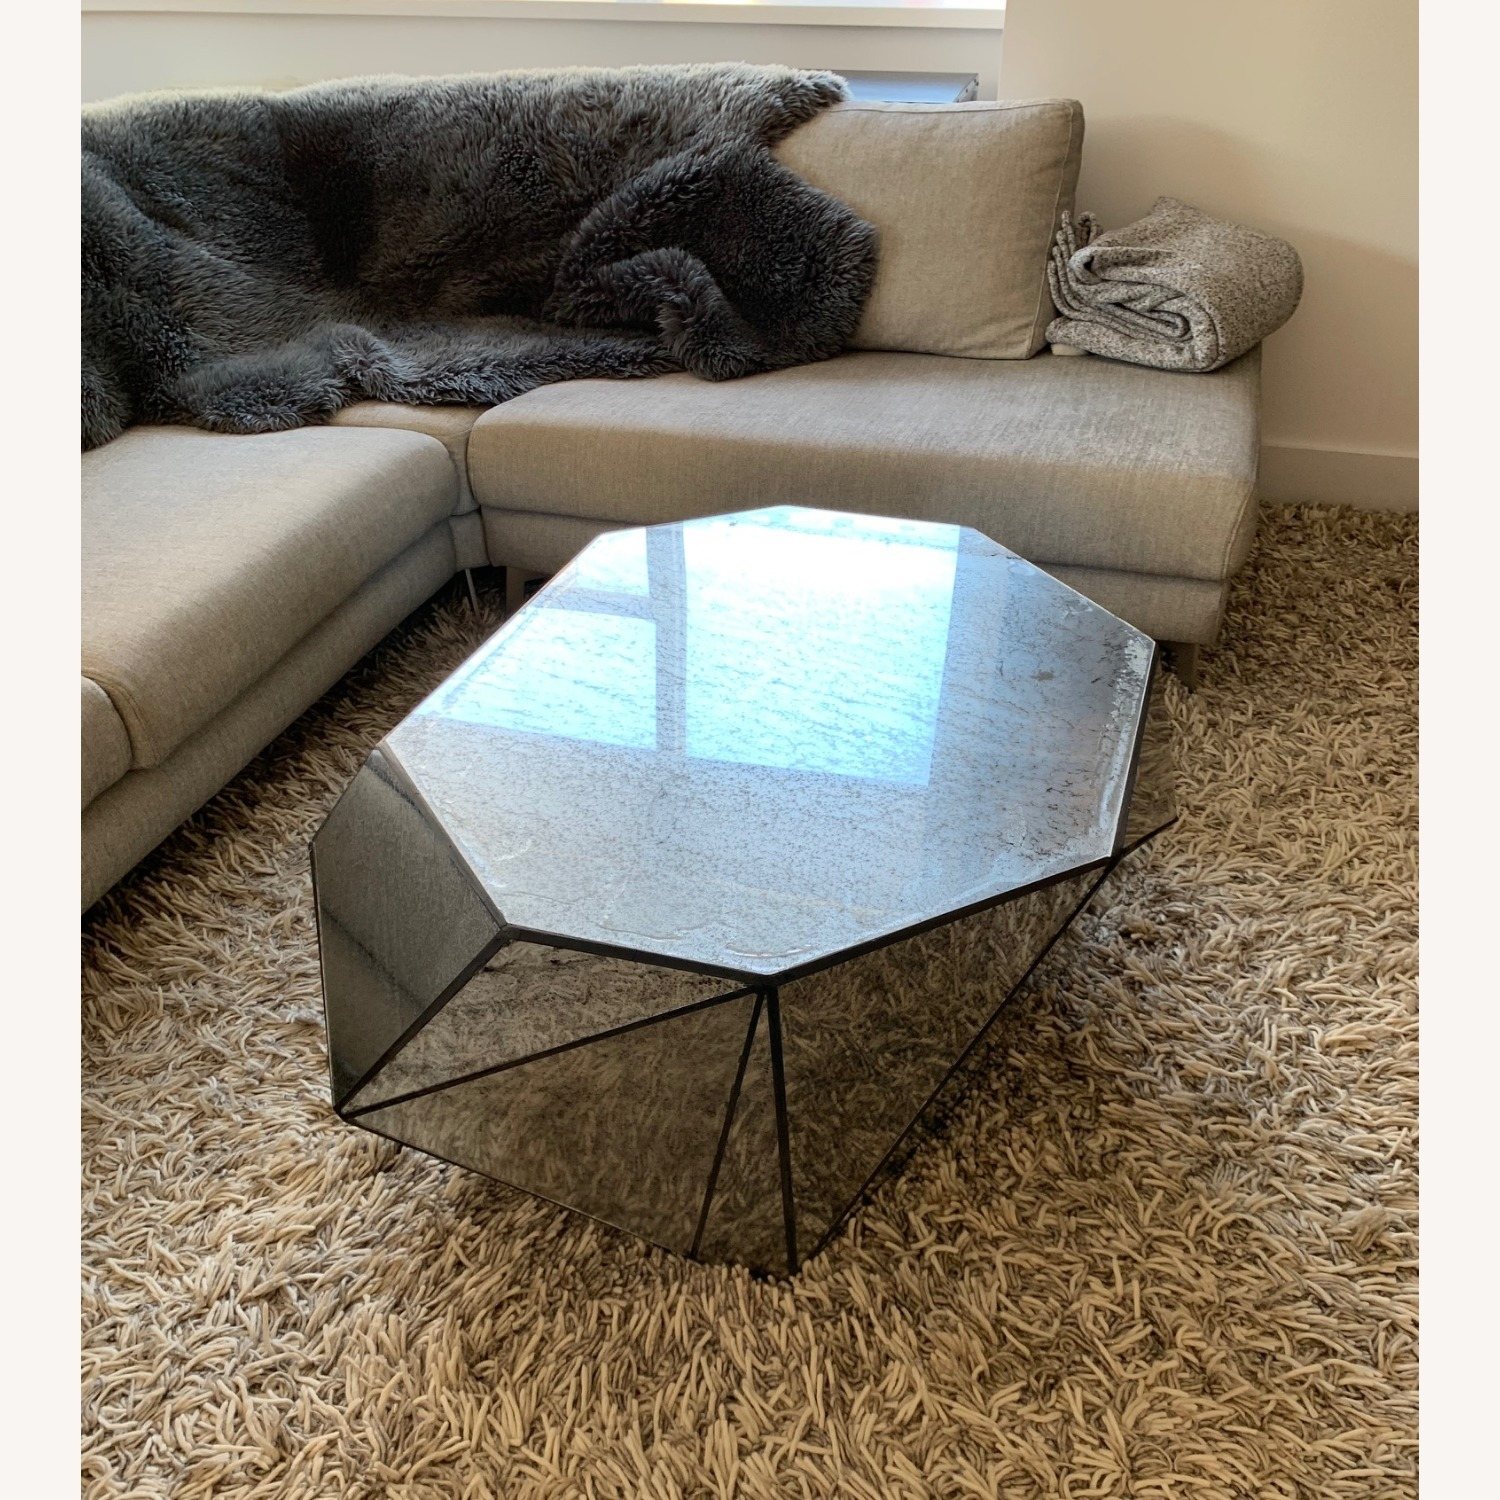 Anthropologie Modern Mirror Coffee Table - image-1